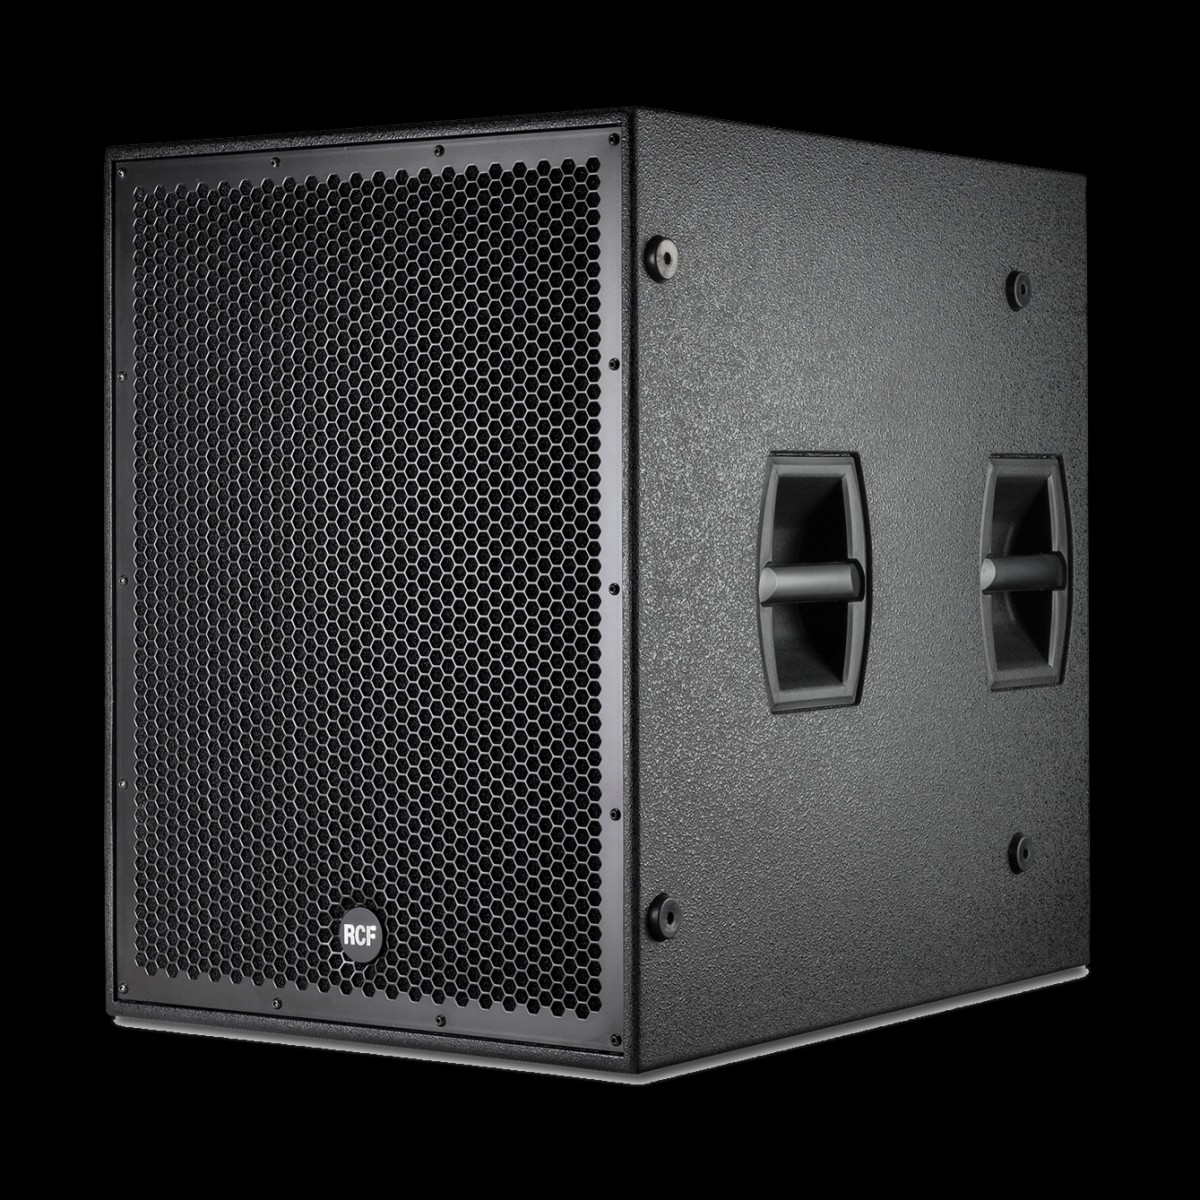 rcf subs 8005 as grille boven luidsprekerhoes strongline